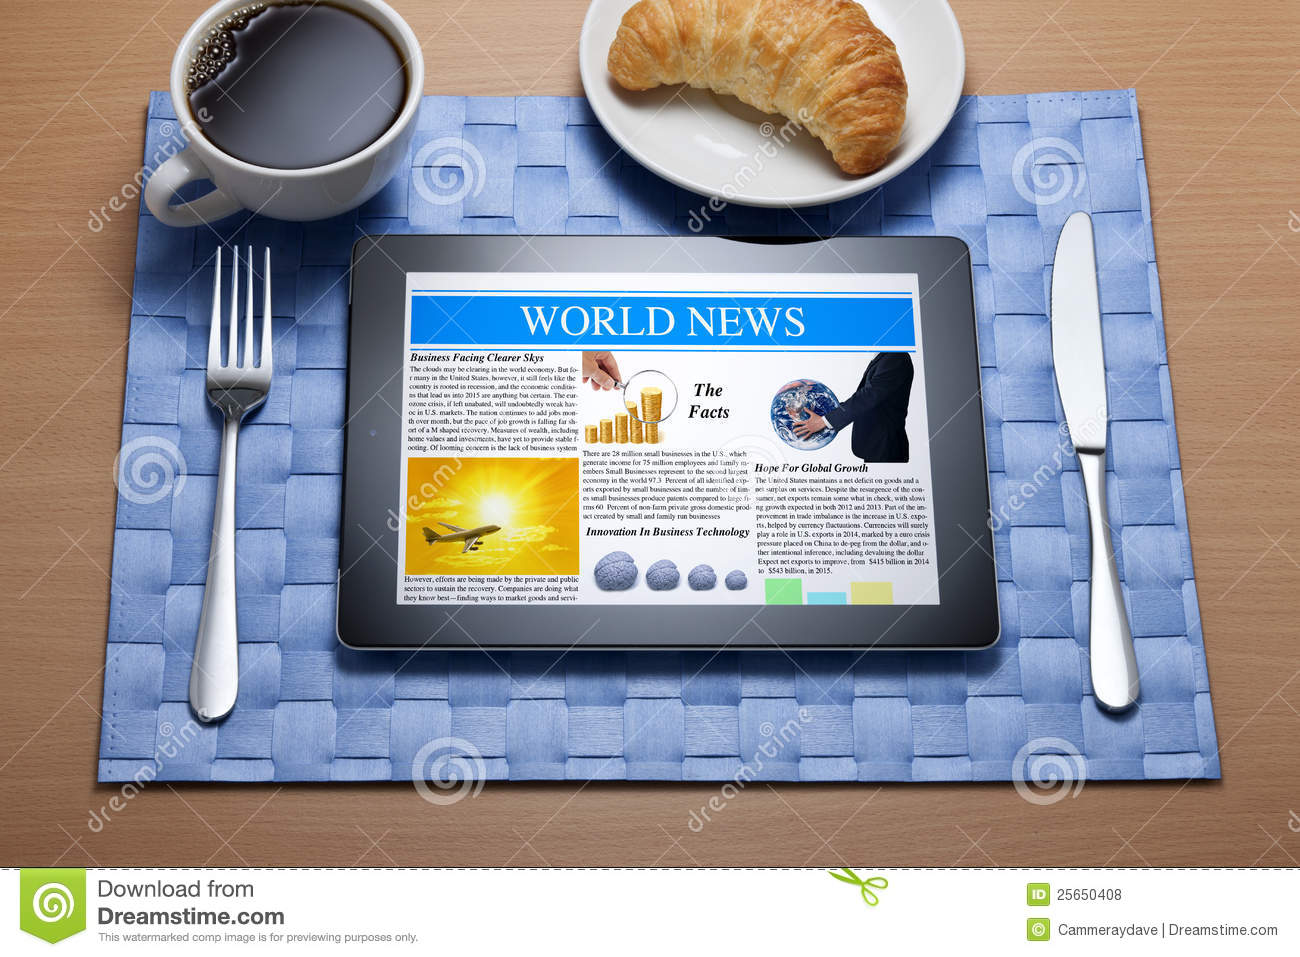 Ipad Tablet Online Breakfast Newspaper Royalty Free Stock